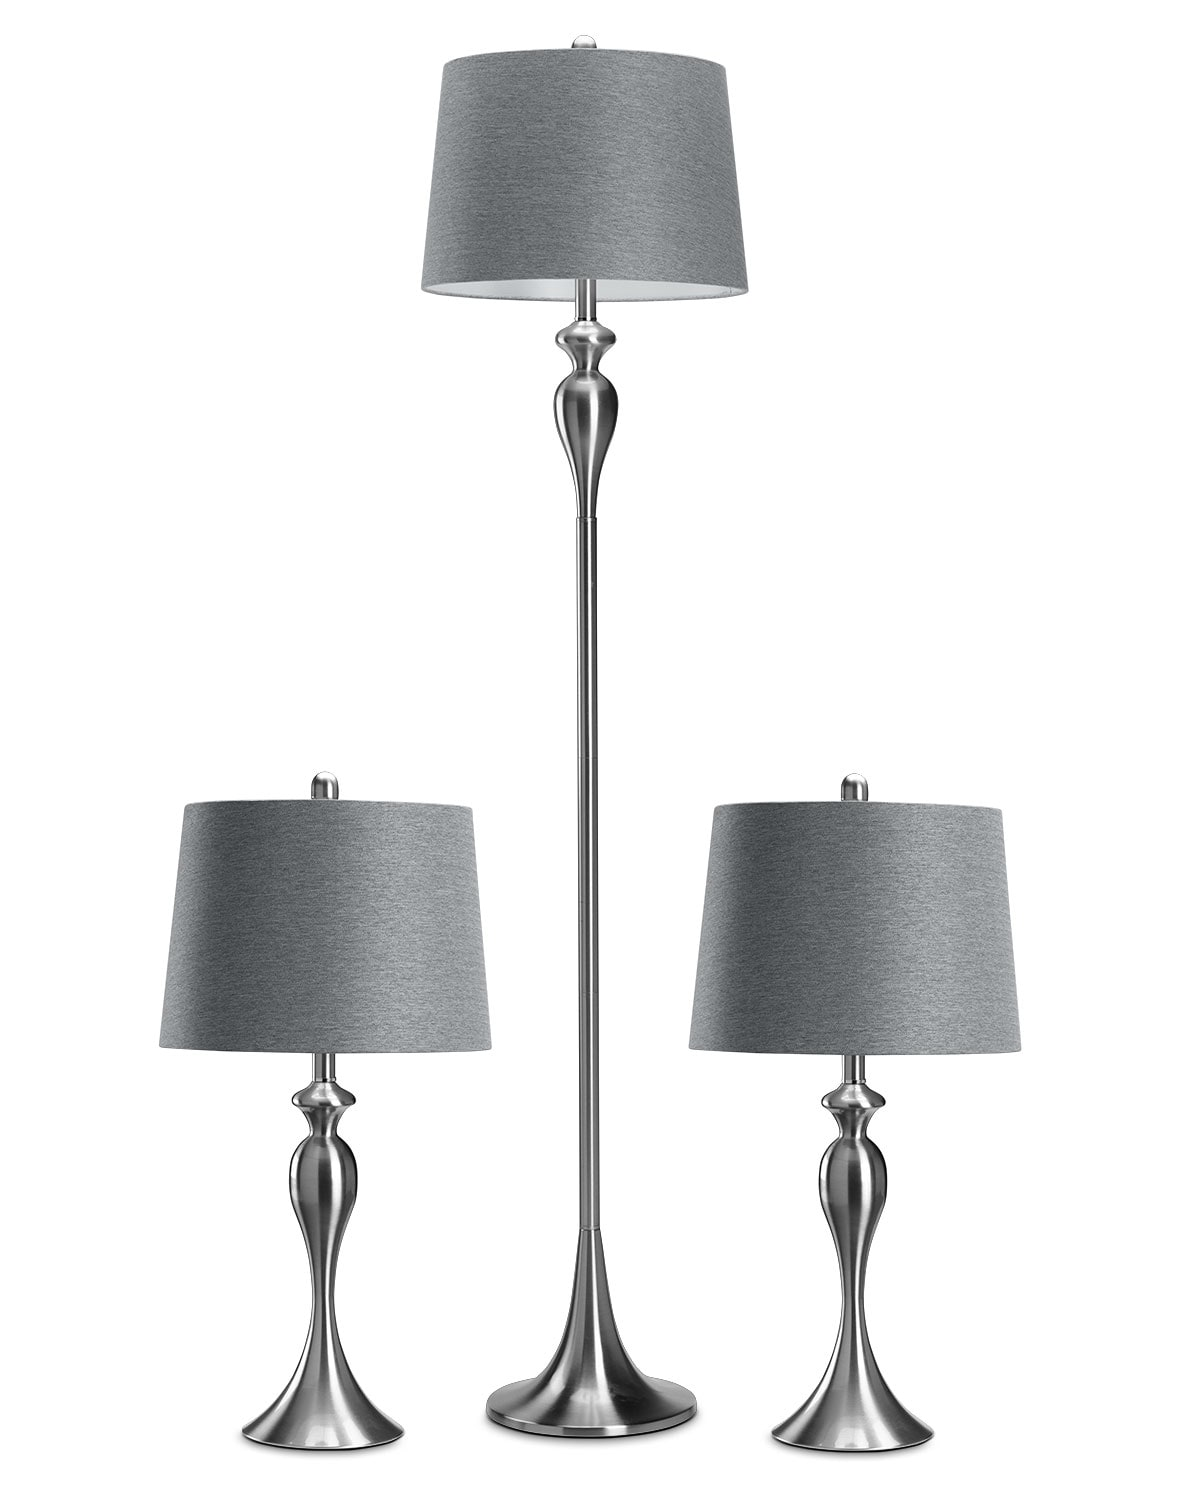 Home Accessories - Gwendolyn 3-Pack Lamps